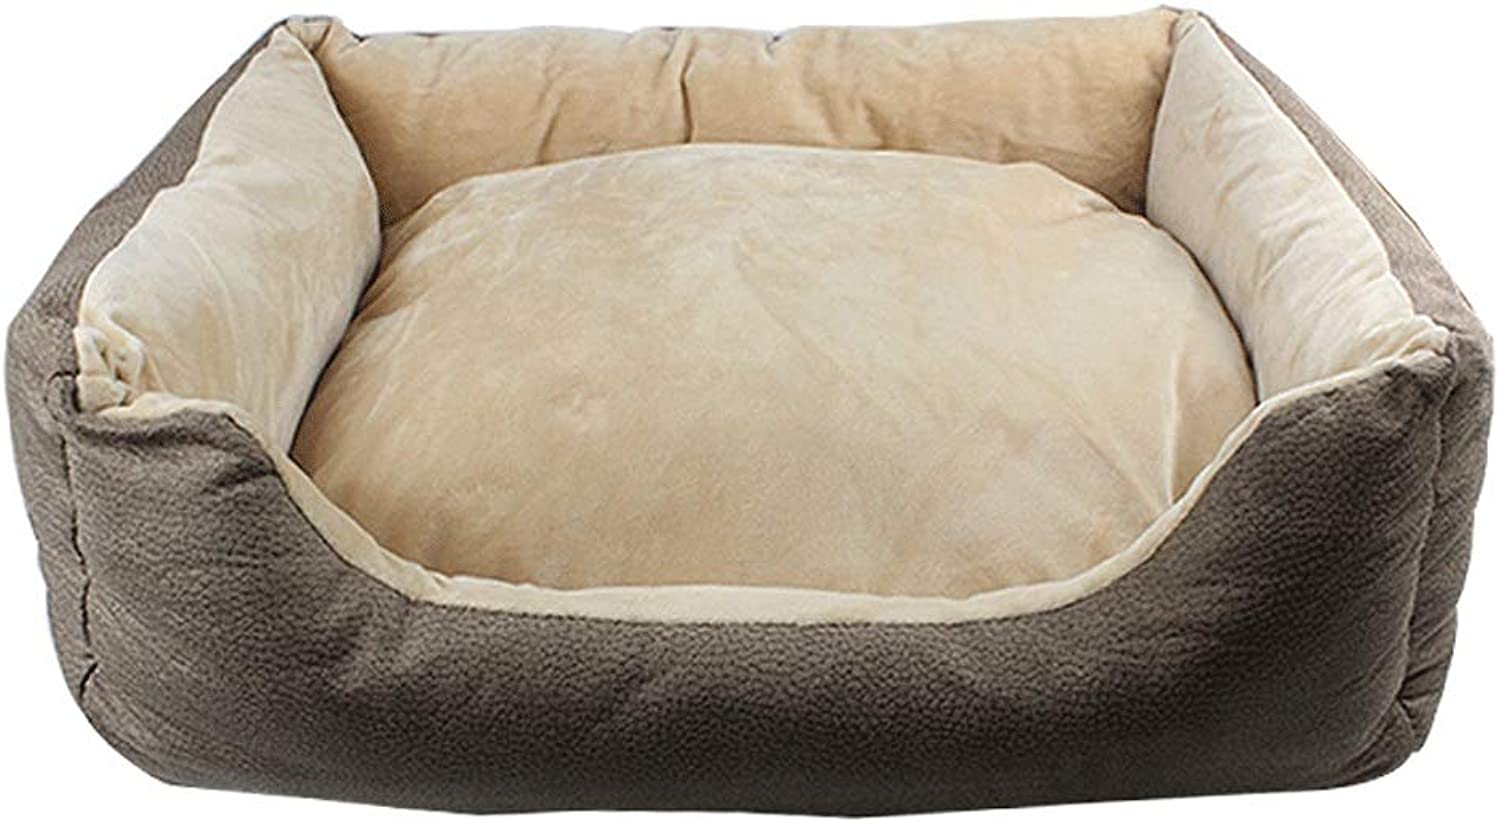 5GHjkj Four Seasons Universal Pet Nest Small And Medium Pets Soft And Comfortable Warm Plus Cotton Dirty Pet Cat Pet Kennel (color   BROWN, Size   M)